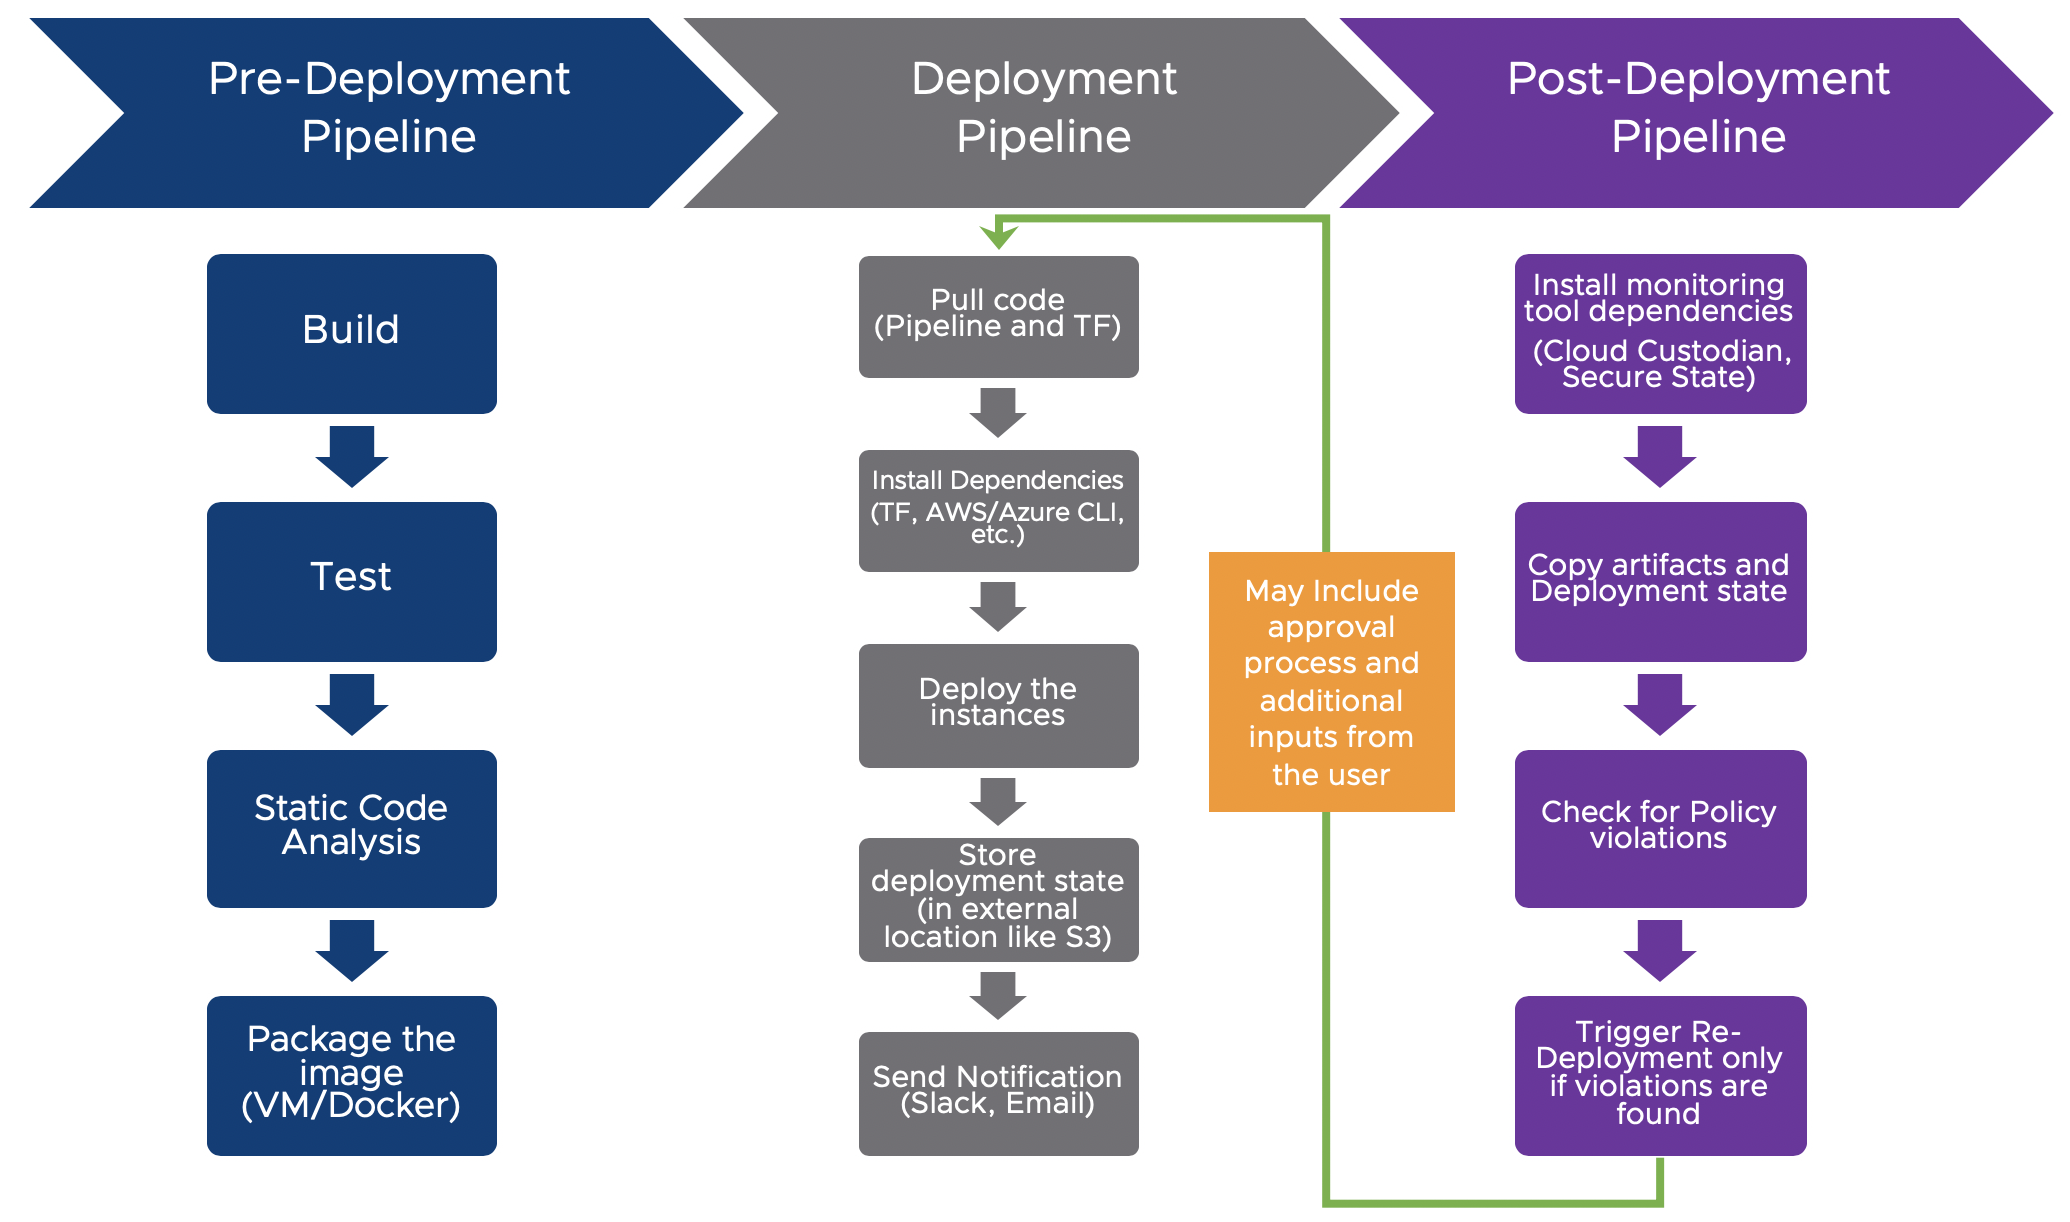 Implementing a Continuous Security Model in the Public Cloud